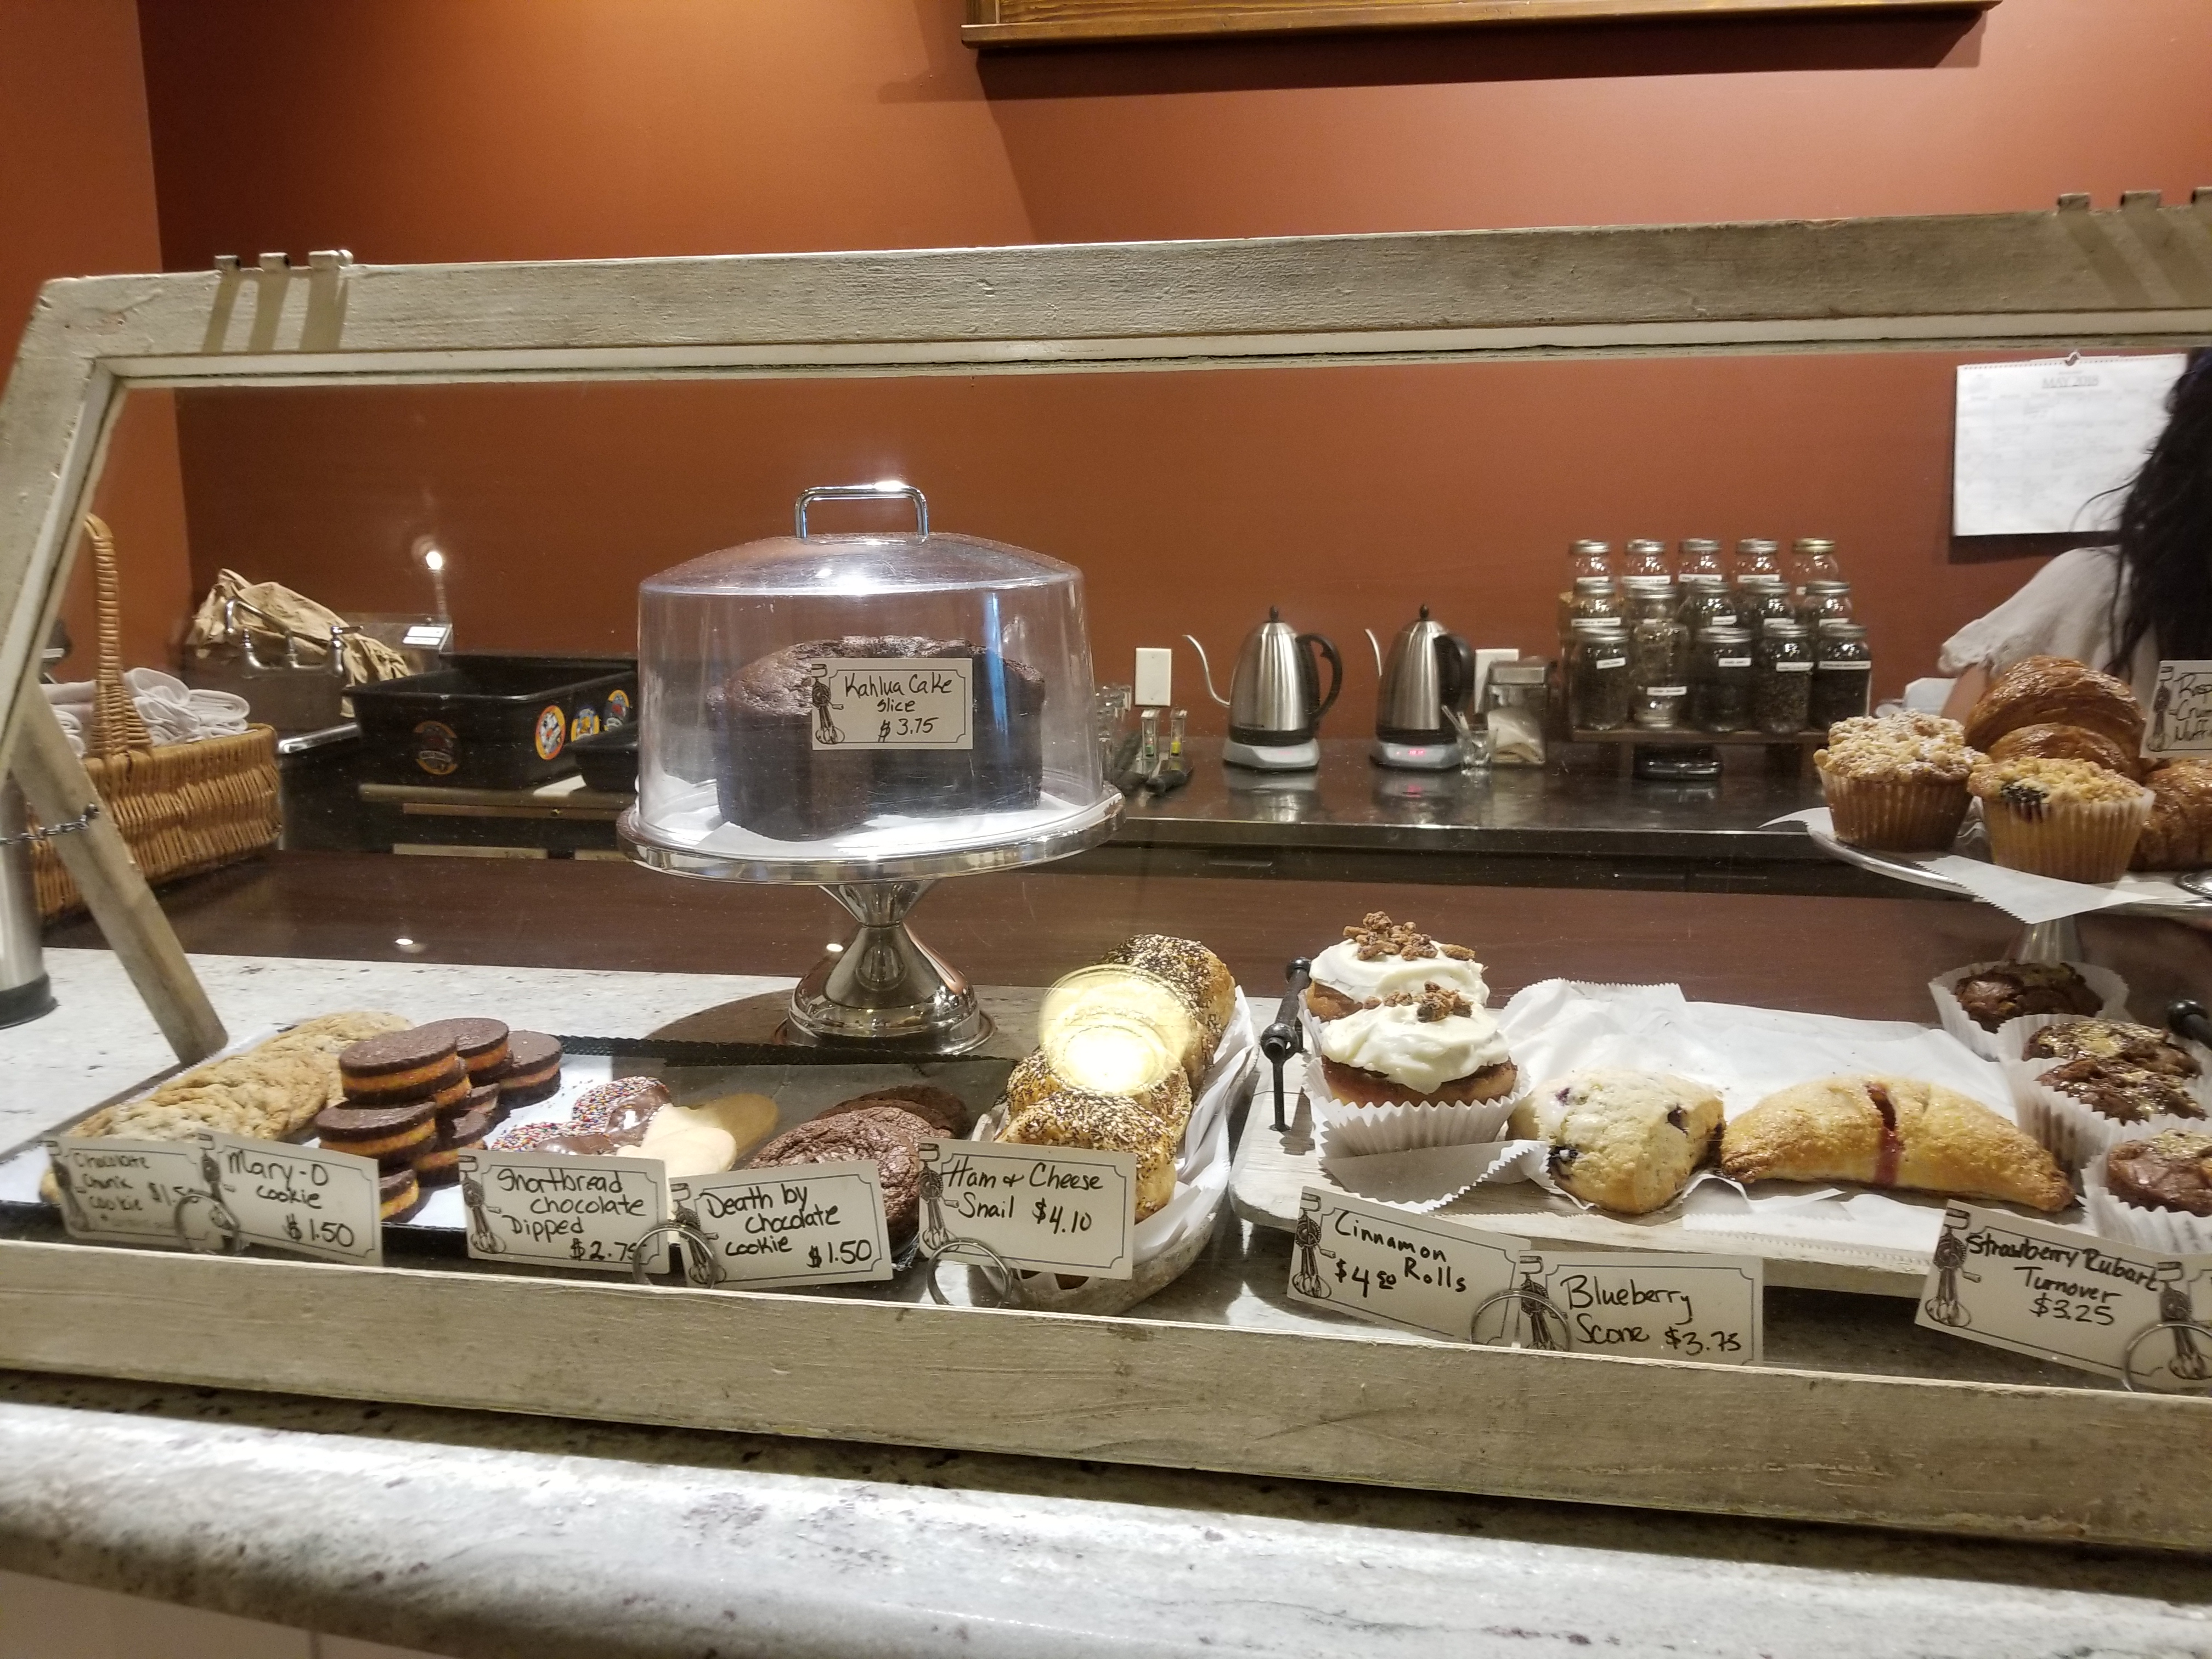 Old Bakery display case